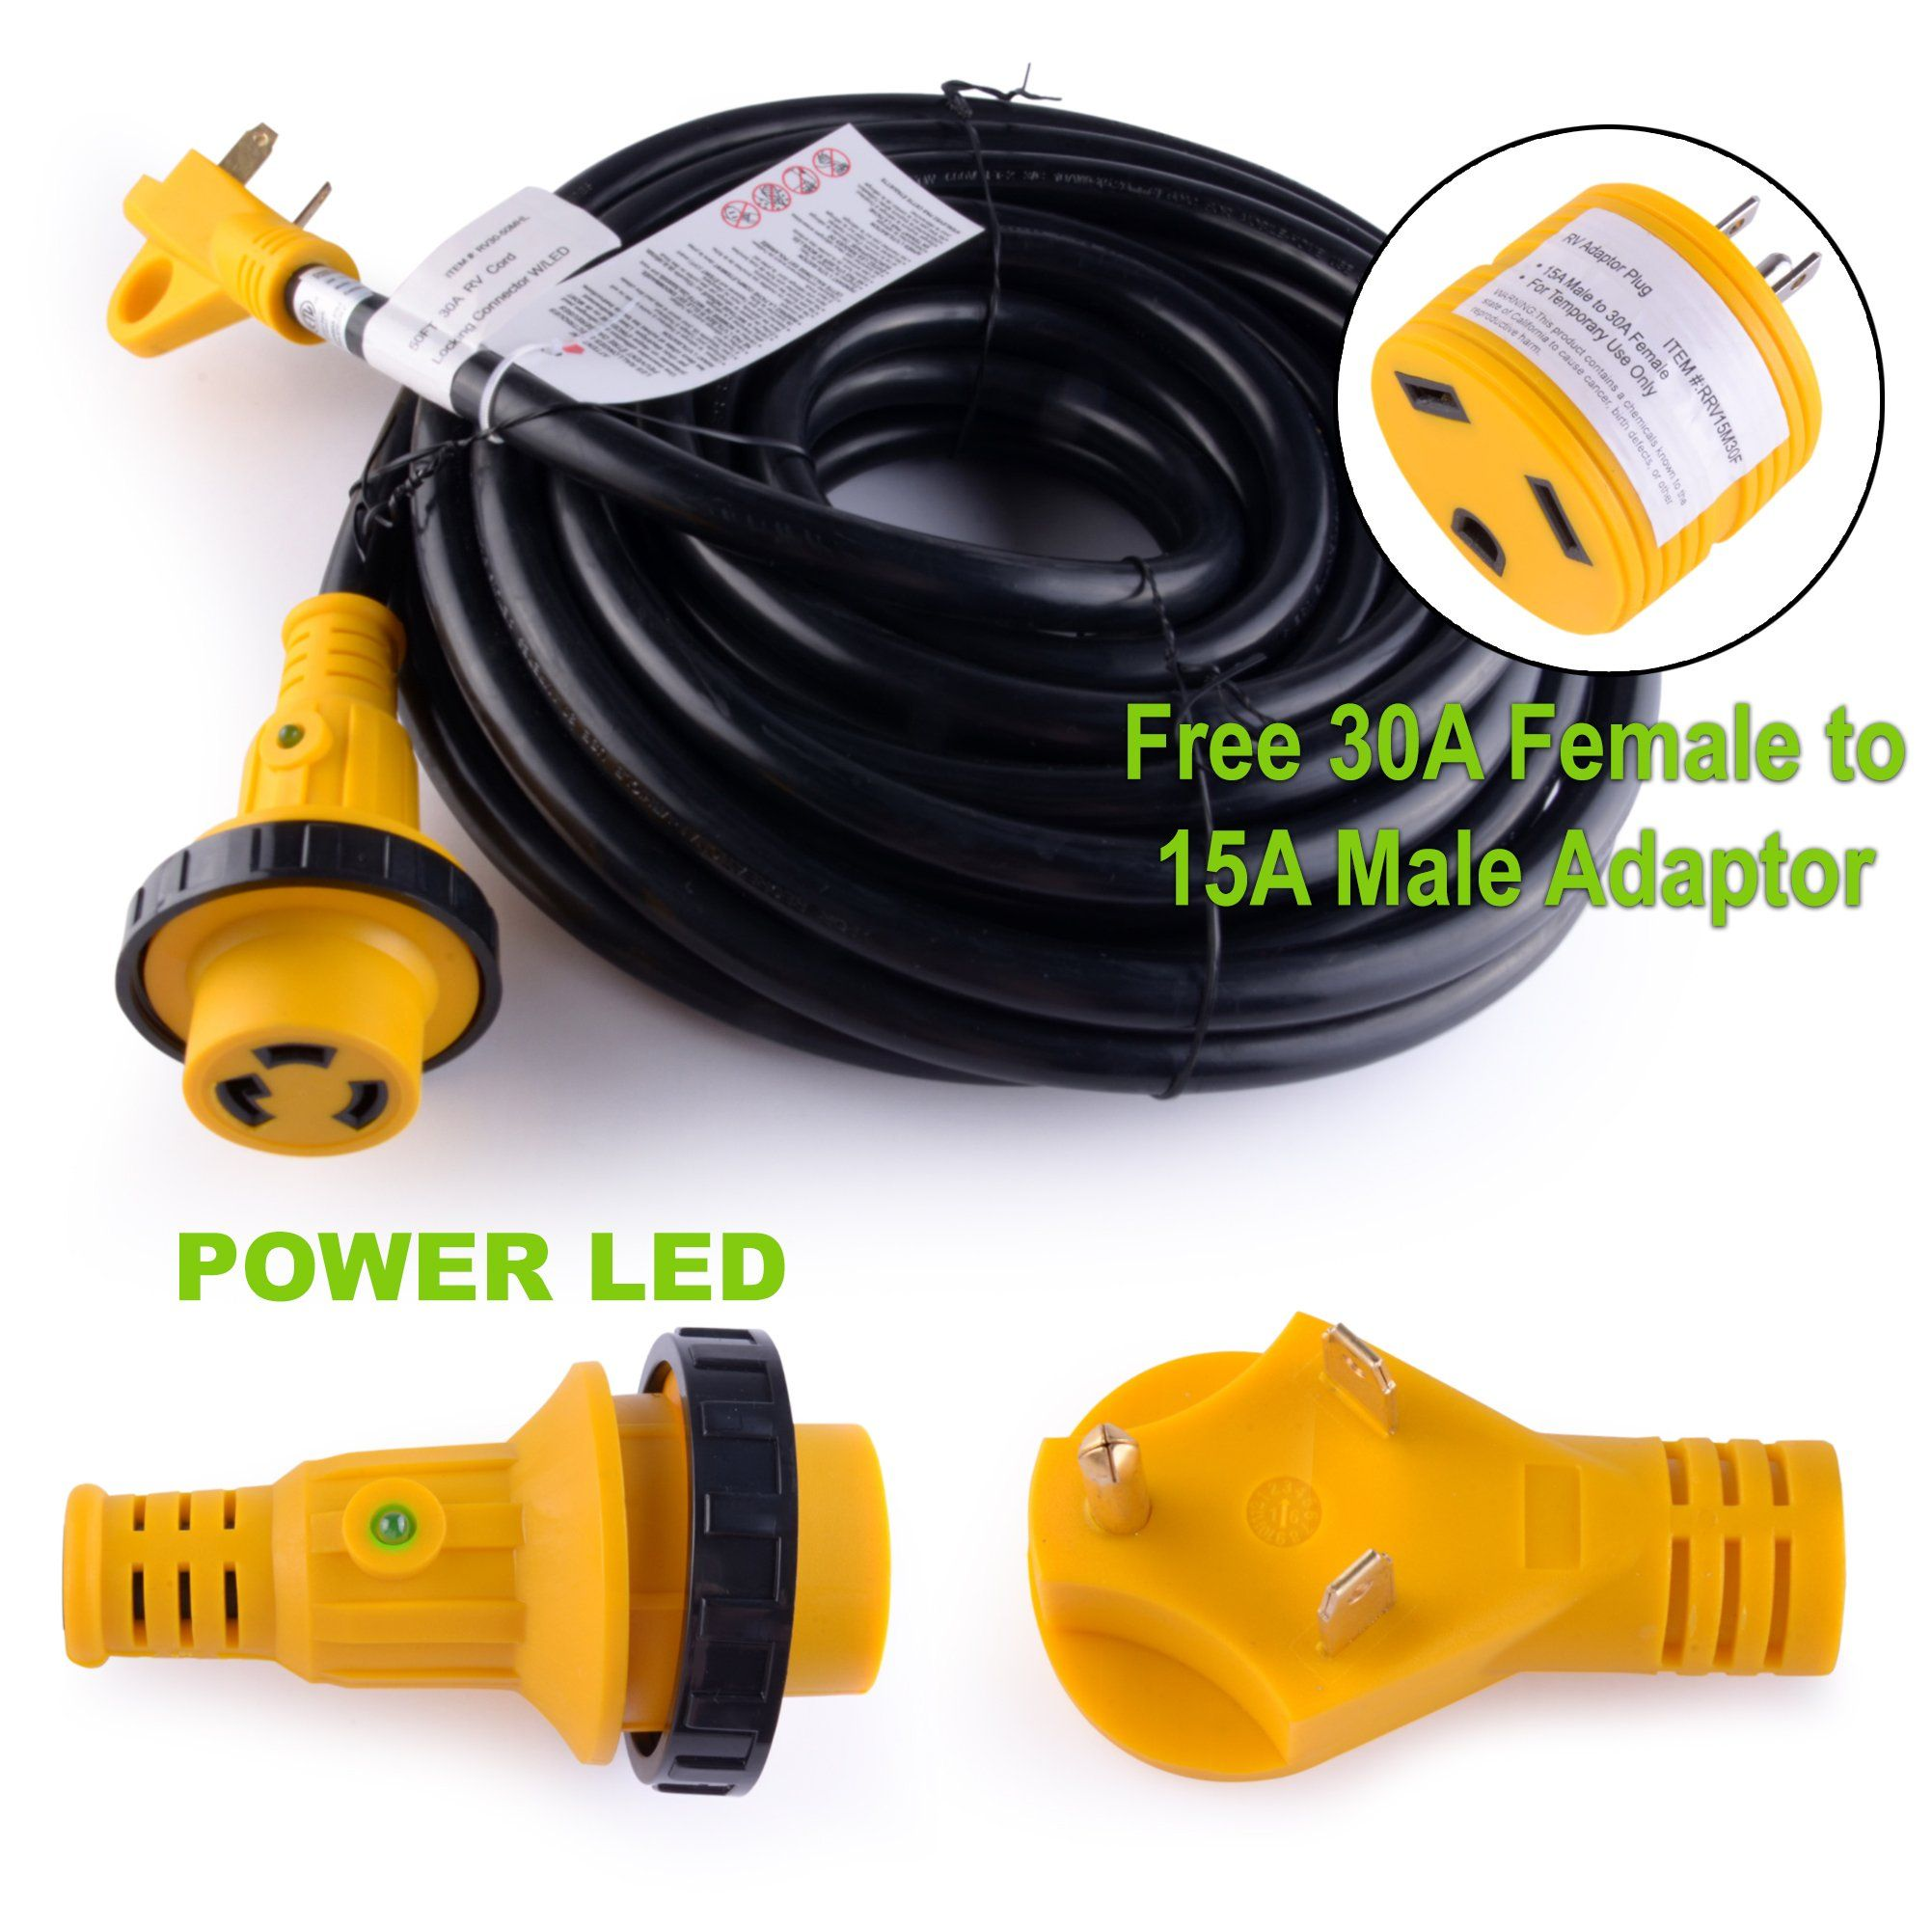 LeisureCords 50' Power / Extension Cord with 30 AMP Male